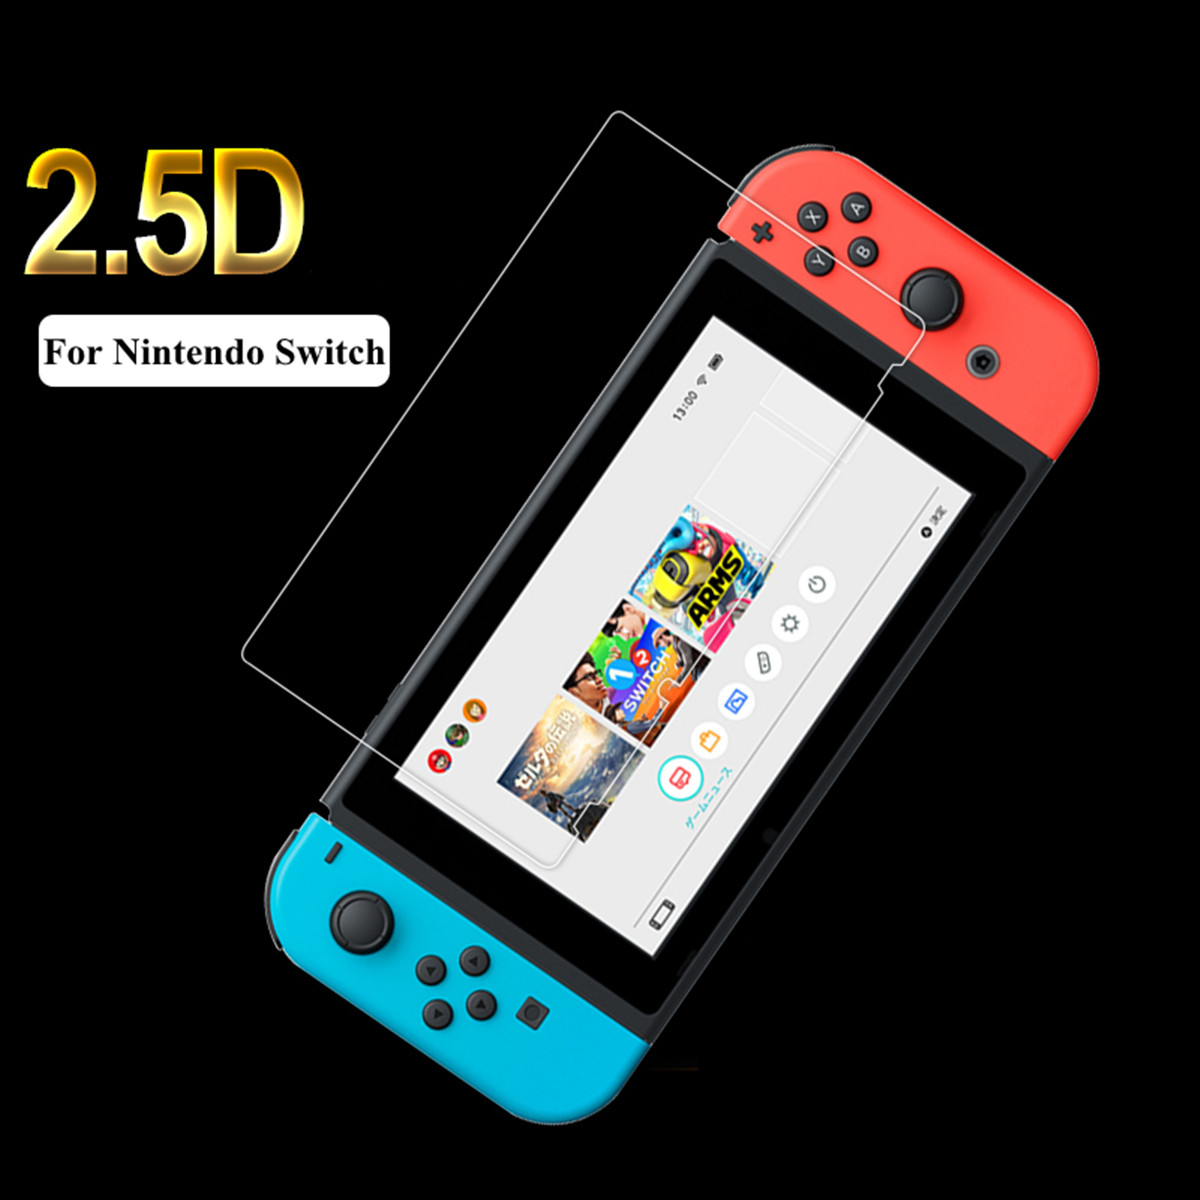 1PC Tempered Glass Screen Protector 2.5D Round Edges For Nintendo Switch Tempered Glass Hardness 9H Reduce Fingerprints